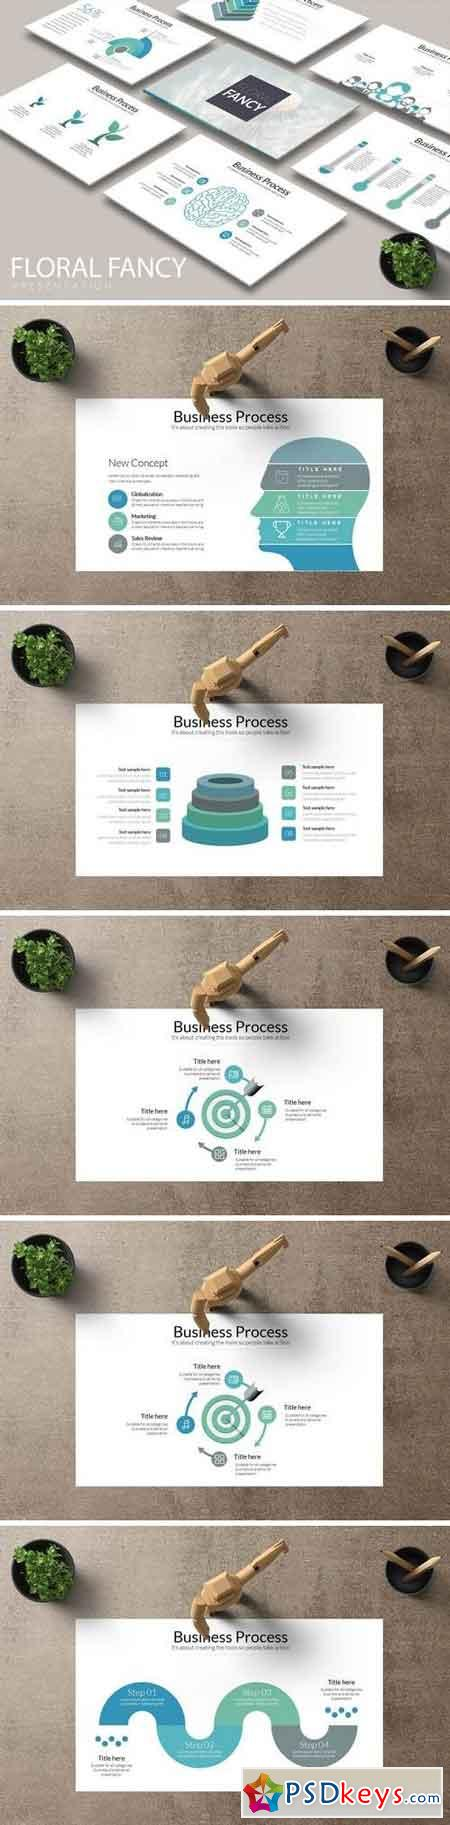 FLORAL FANCY Powerpoint